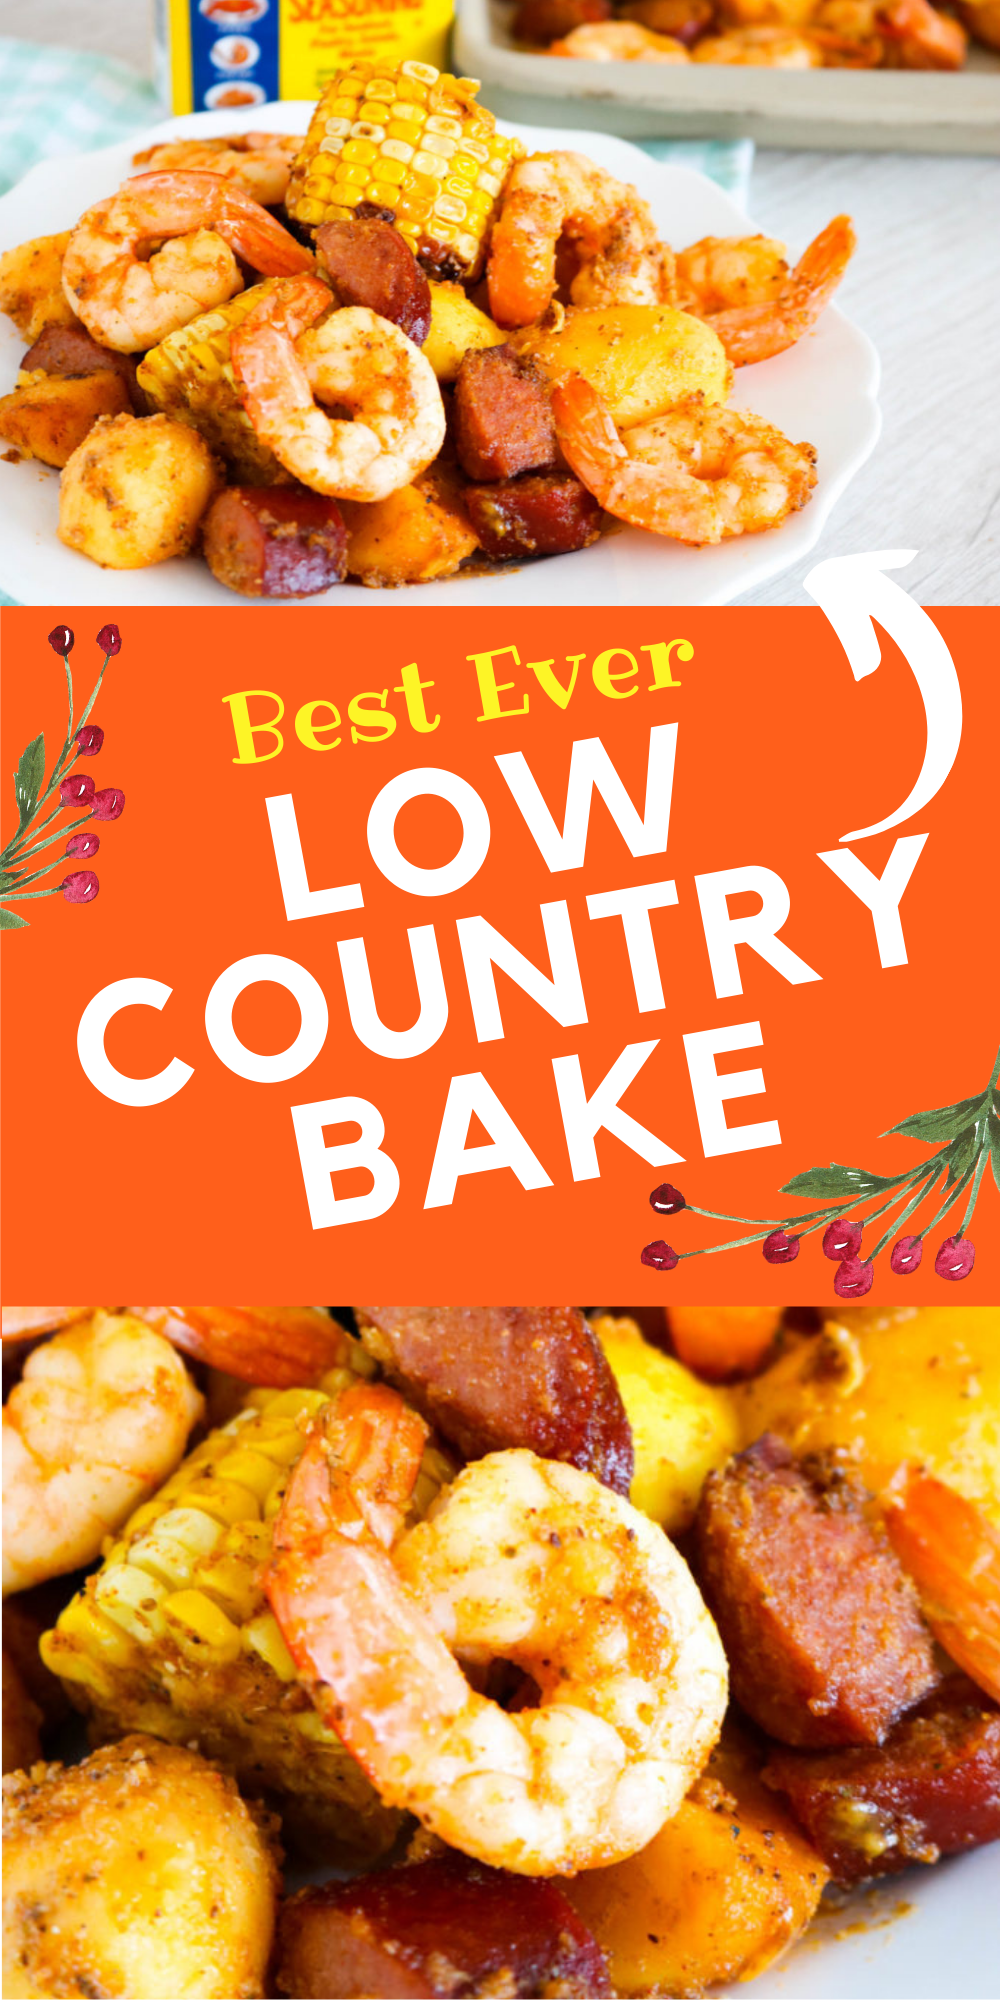 This Low Country Bake has all of the classic flavors of a Low Country Boil but it's baked in the oven and done in about 30 minutes!   via @bigbearswife